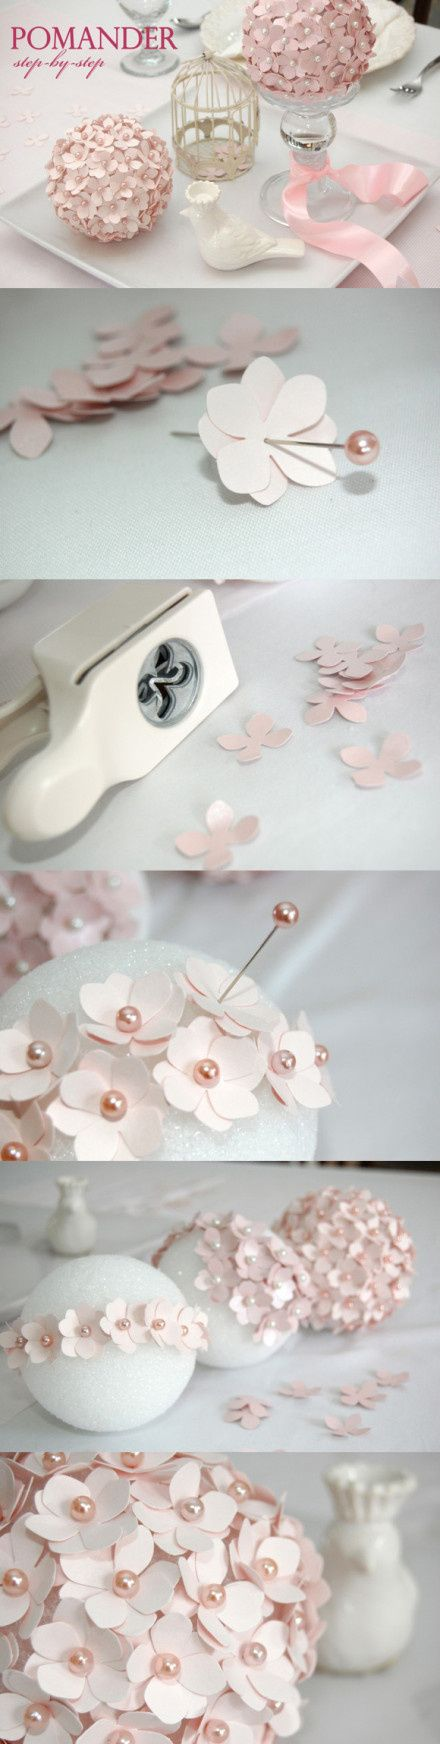 Styrofoam ball, rose gold and pearl colored pins, flower hole punch and printed paper, pin two on each. Love this make one to hang from calling or put on top candle stick holder spray painted